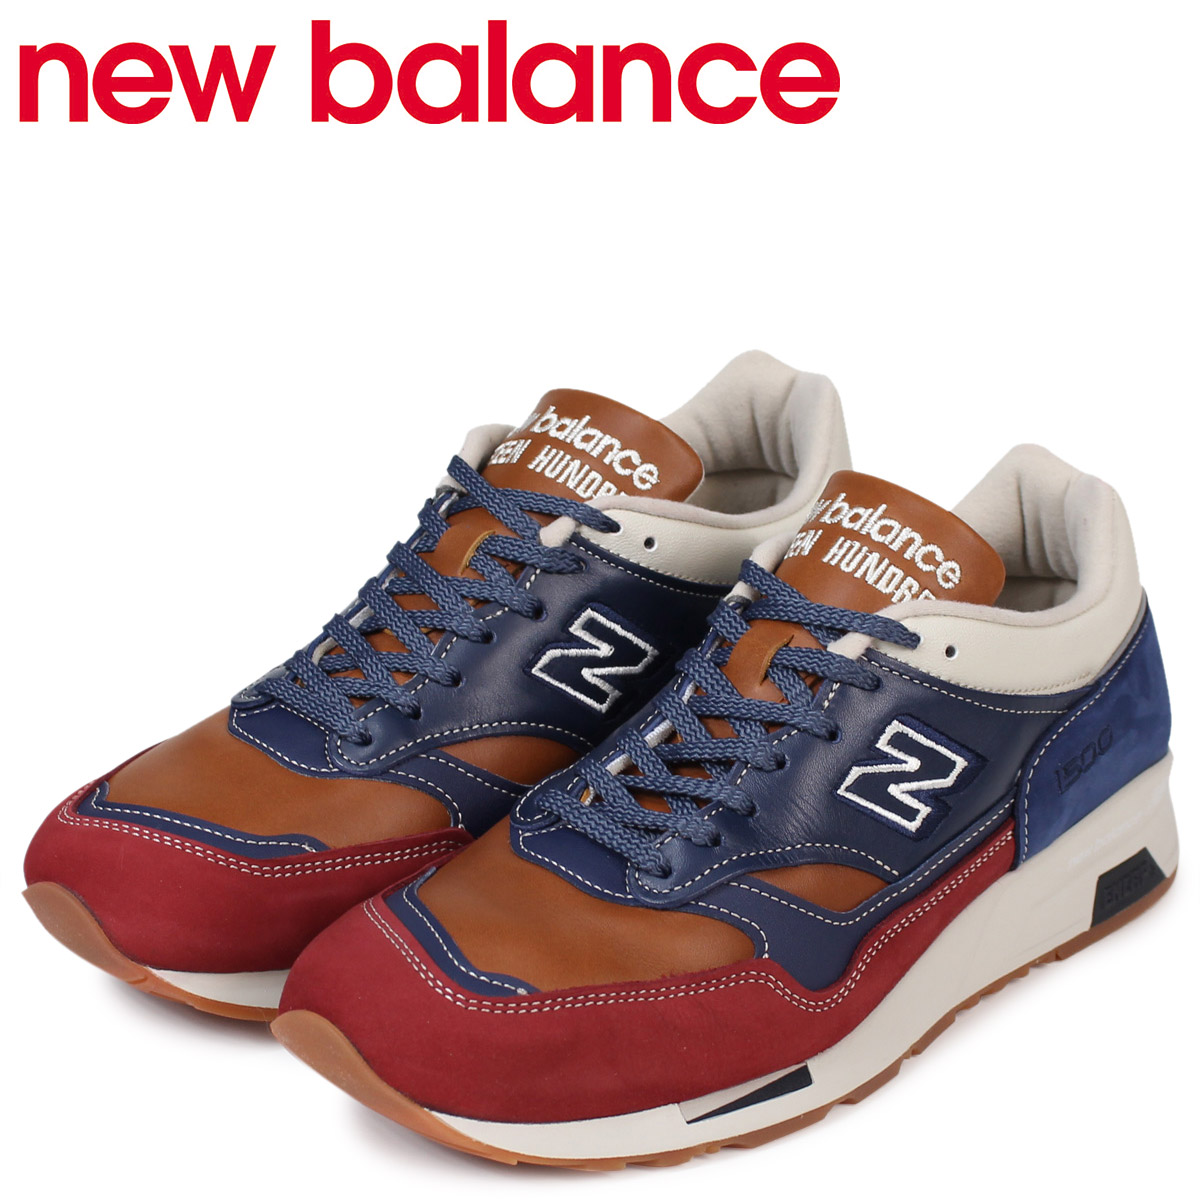 new balance 1500 leather navy nz